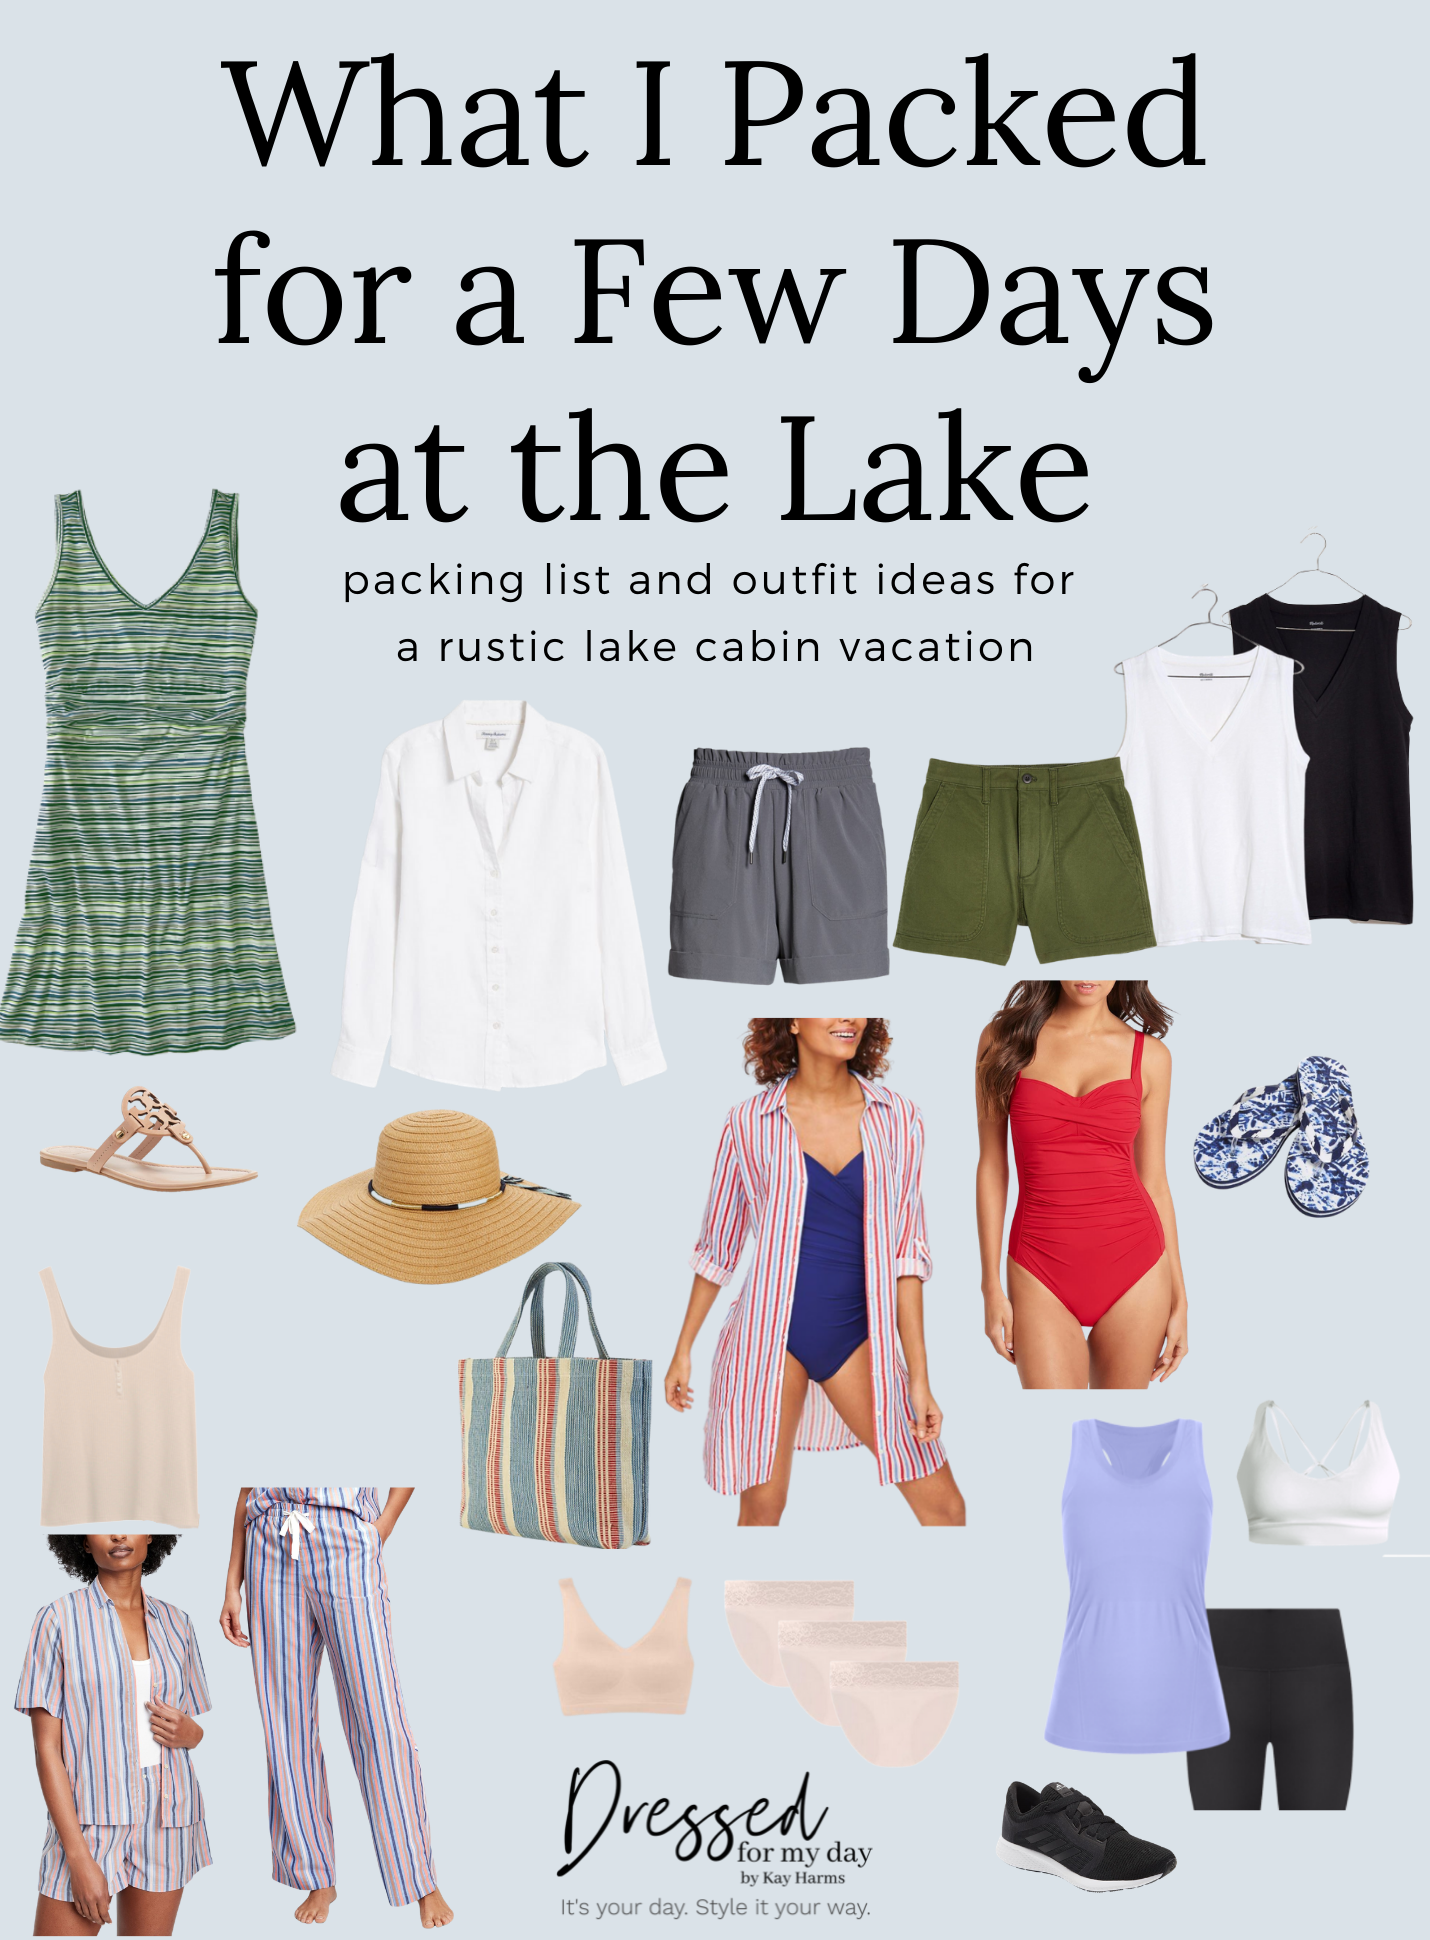 What I Packed for a Few Days at the Lake clothing